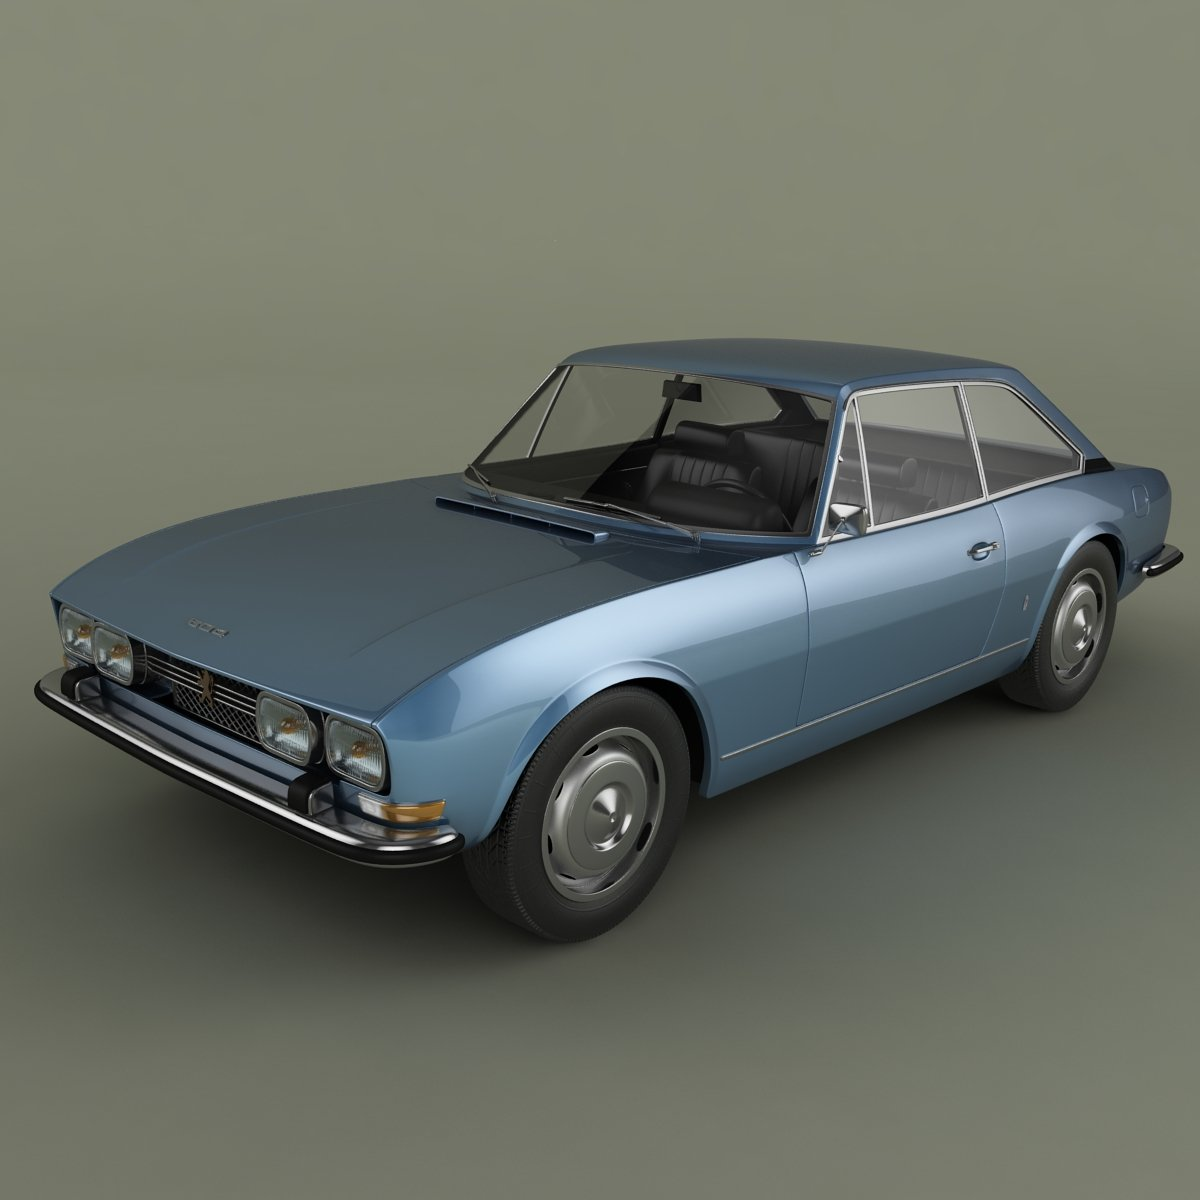 peugeot 504 coupe modelo 3d in coches cl sicos 3dexport. Black Bedroom Furniture Sets. Home Design Ideas